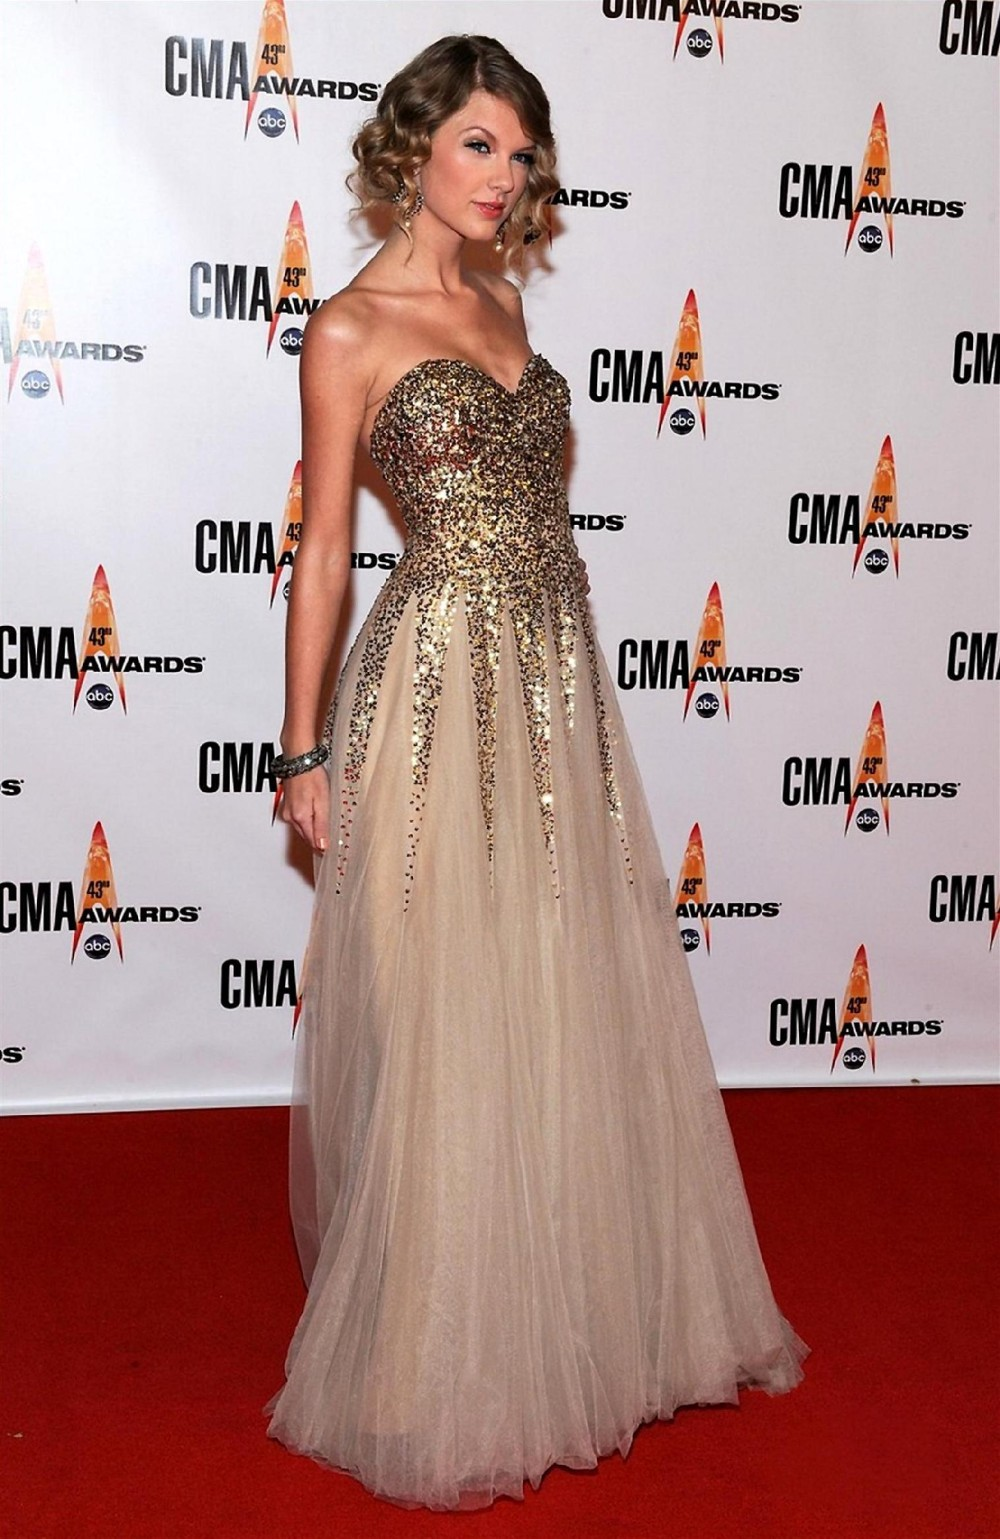 2014 Sexy Sequin Taylor Swift Dress A Line Sweetheart Gold Tulle Elie Saab Floor Length Celebrity Dress Prom Dress-in Celebrity-Inspired Dresses from Apparel & Accessories on Aliexpress.com